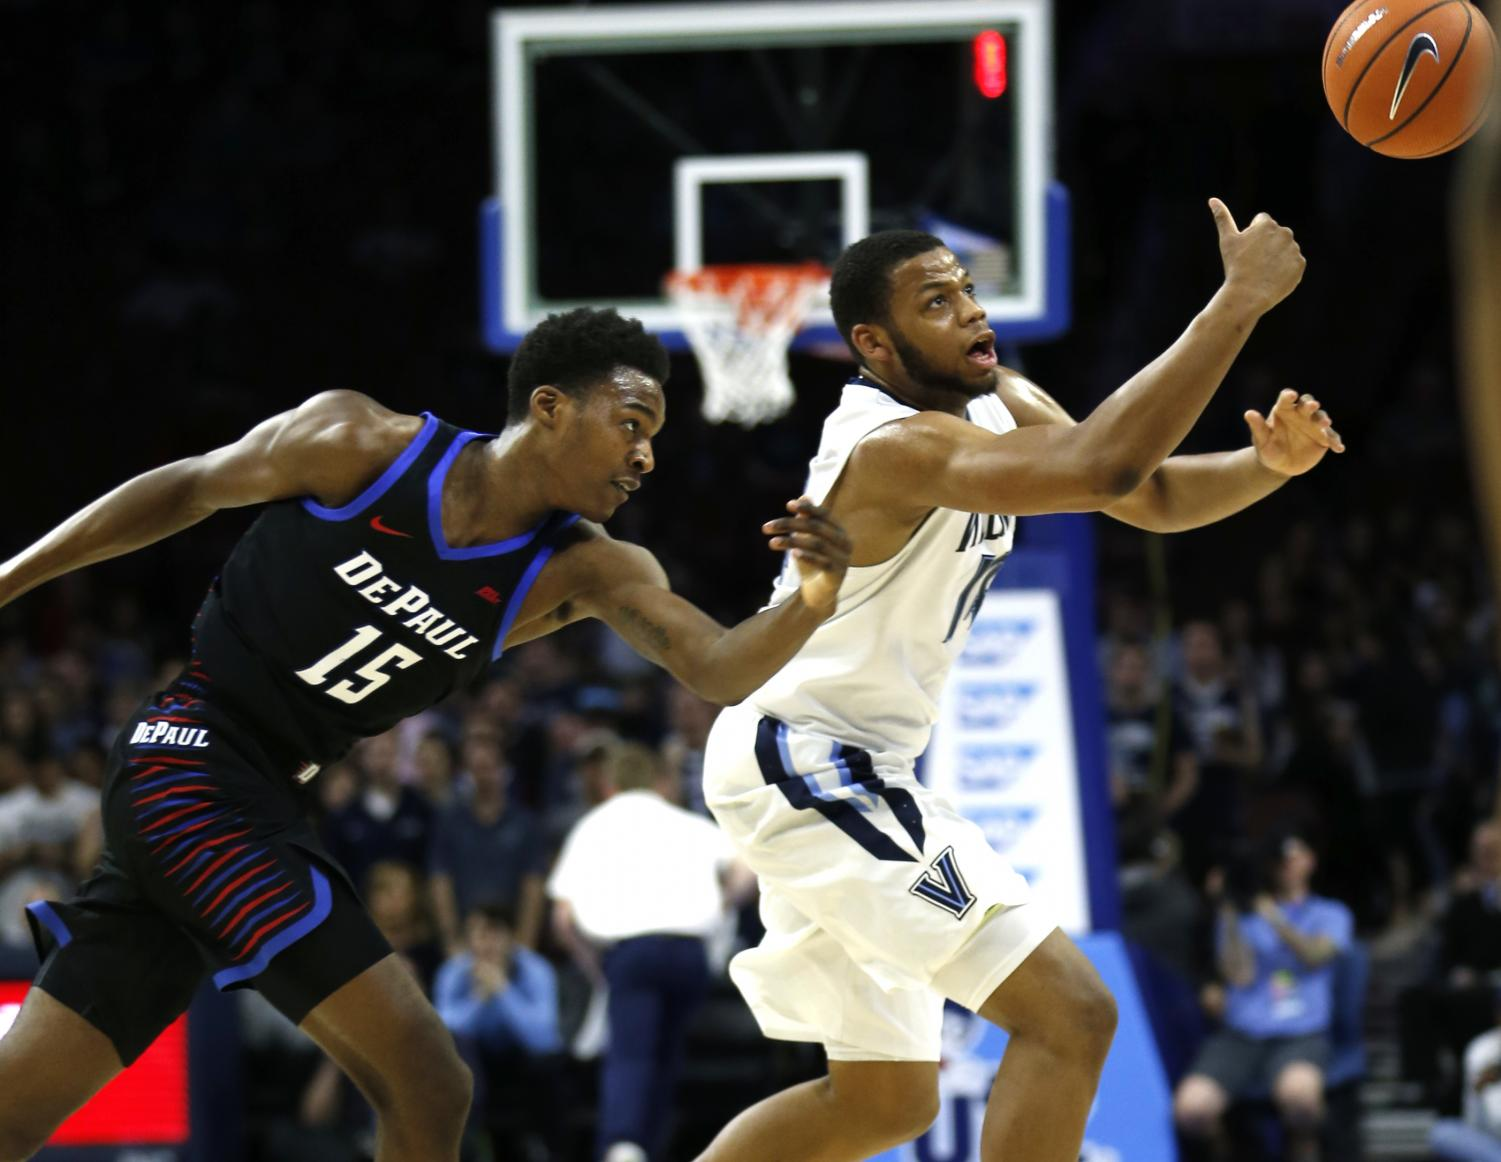 Creighton upsets No. 3 Villanova in overtime